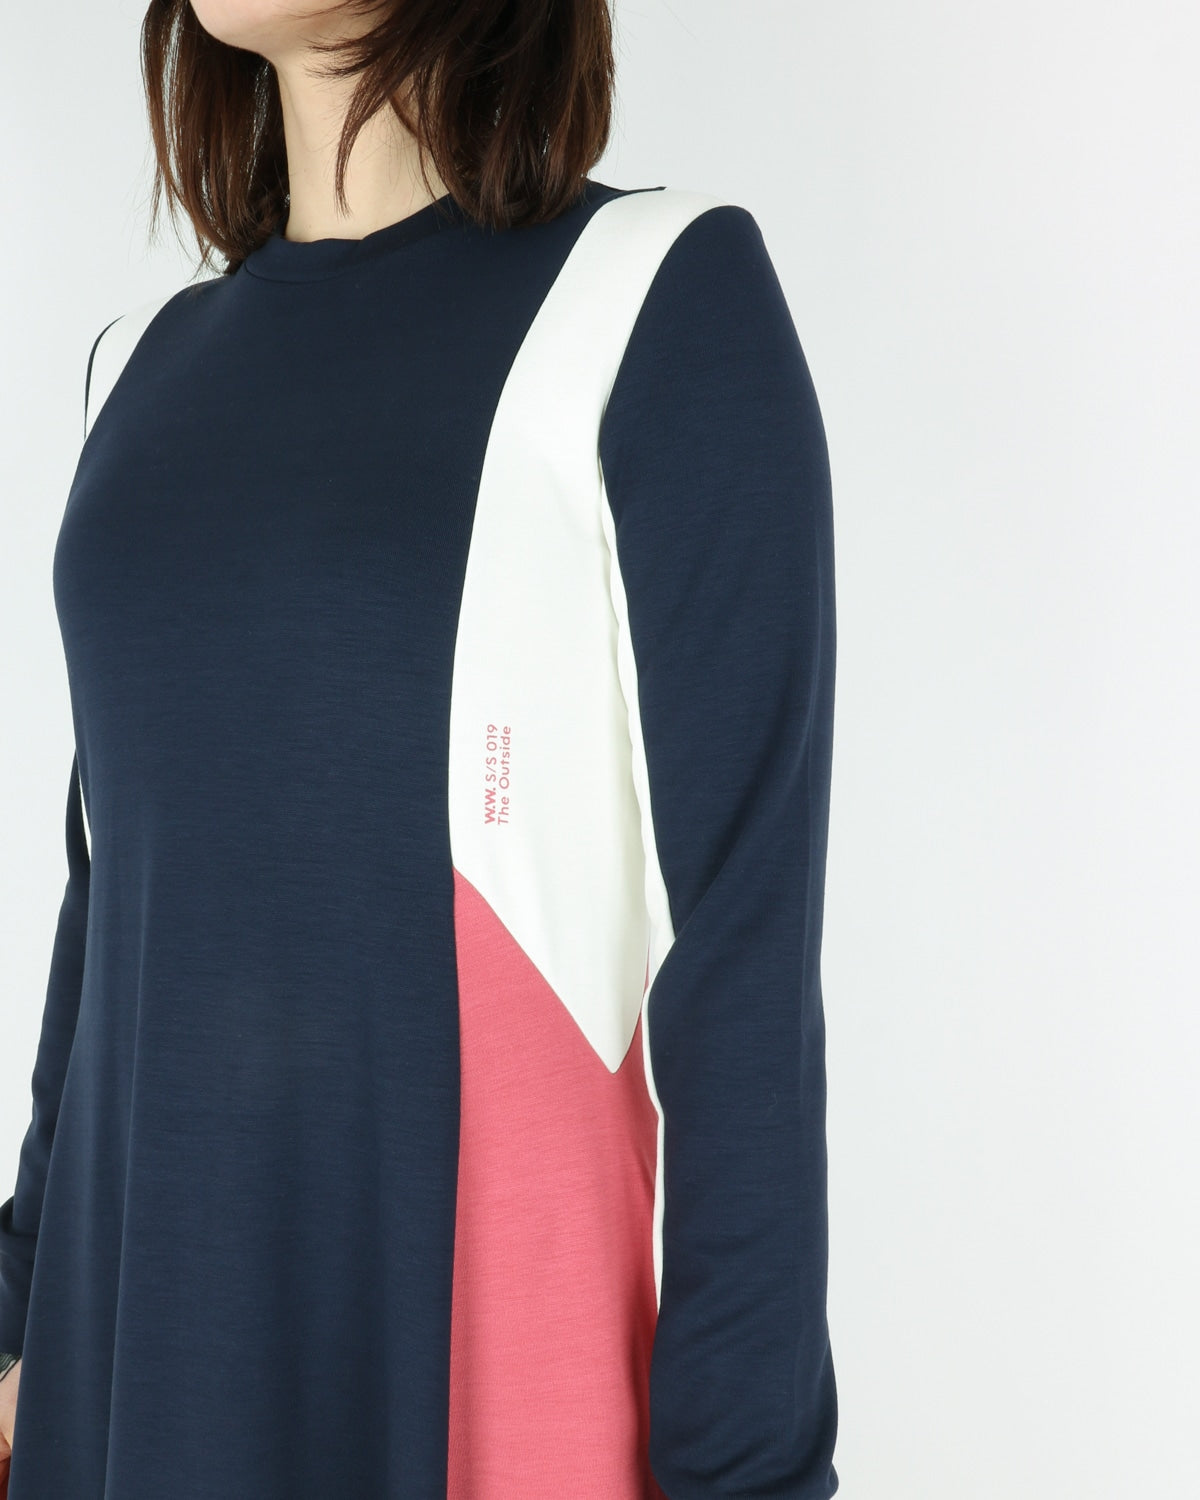 wood wood_mandy dress_navy colorblock_view_3_4